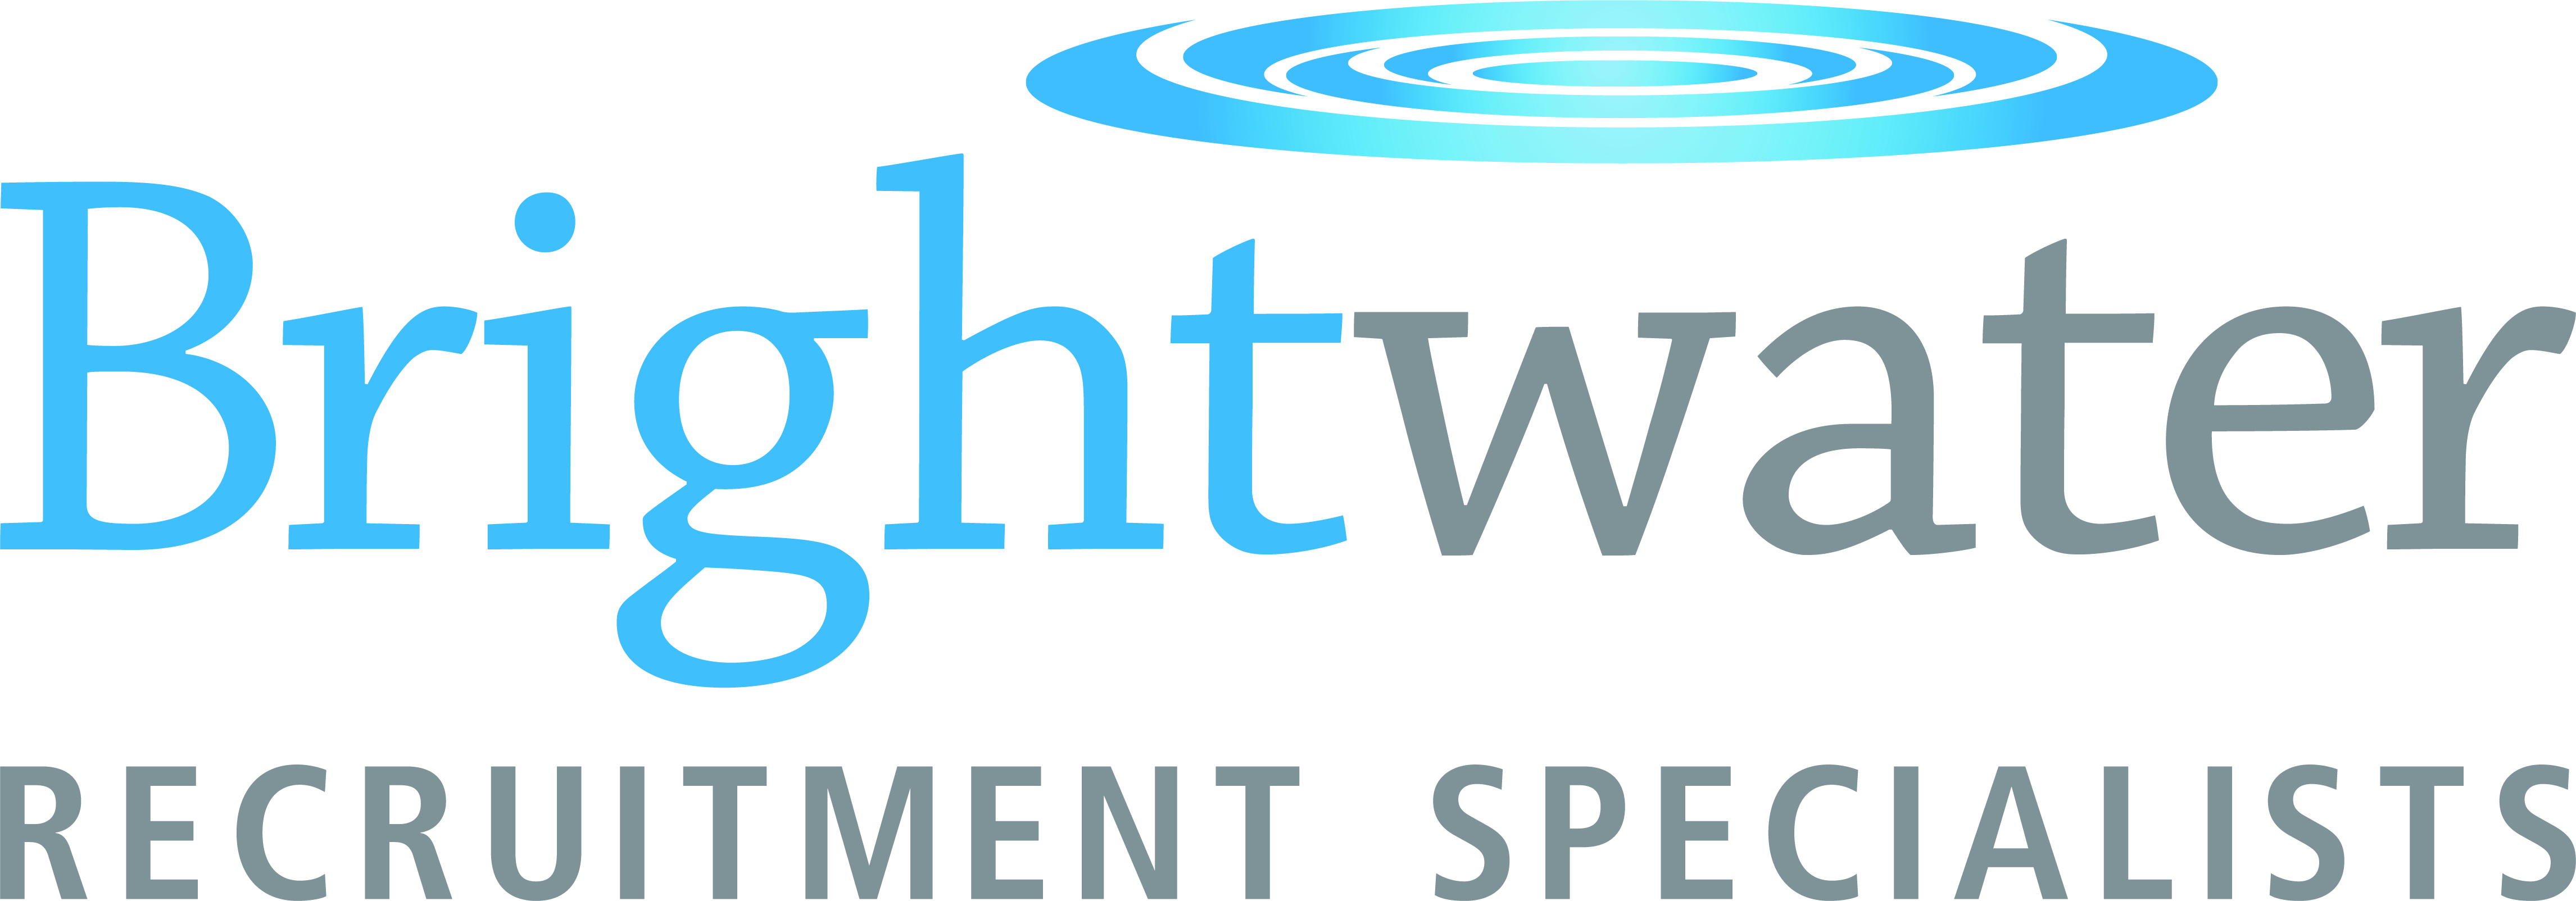 Brightwater Recruitment Consultants